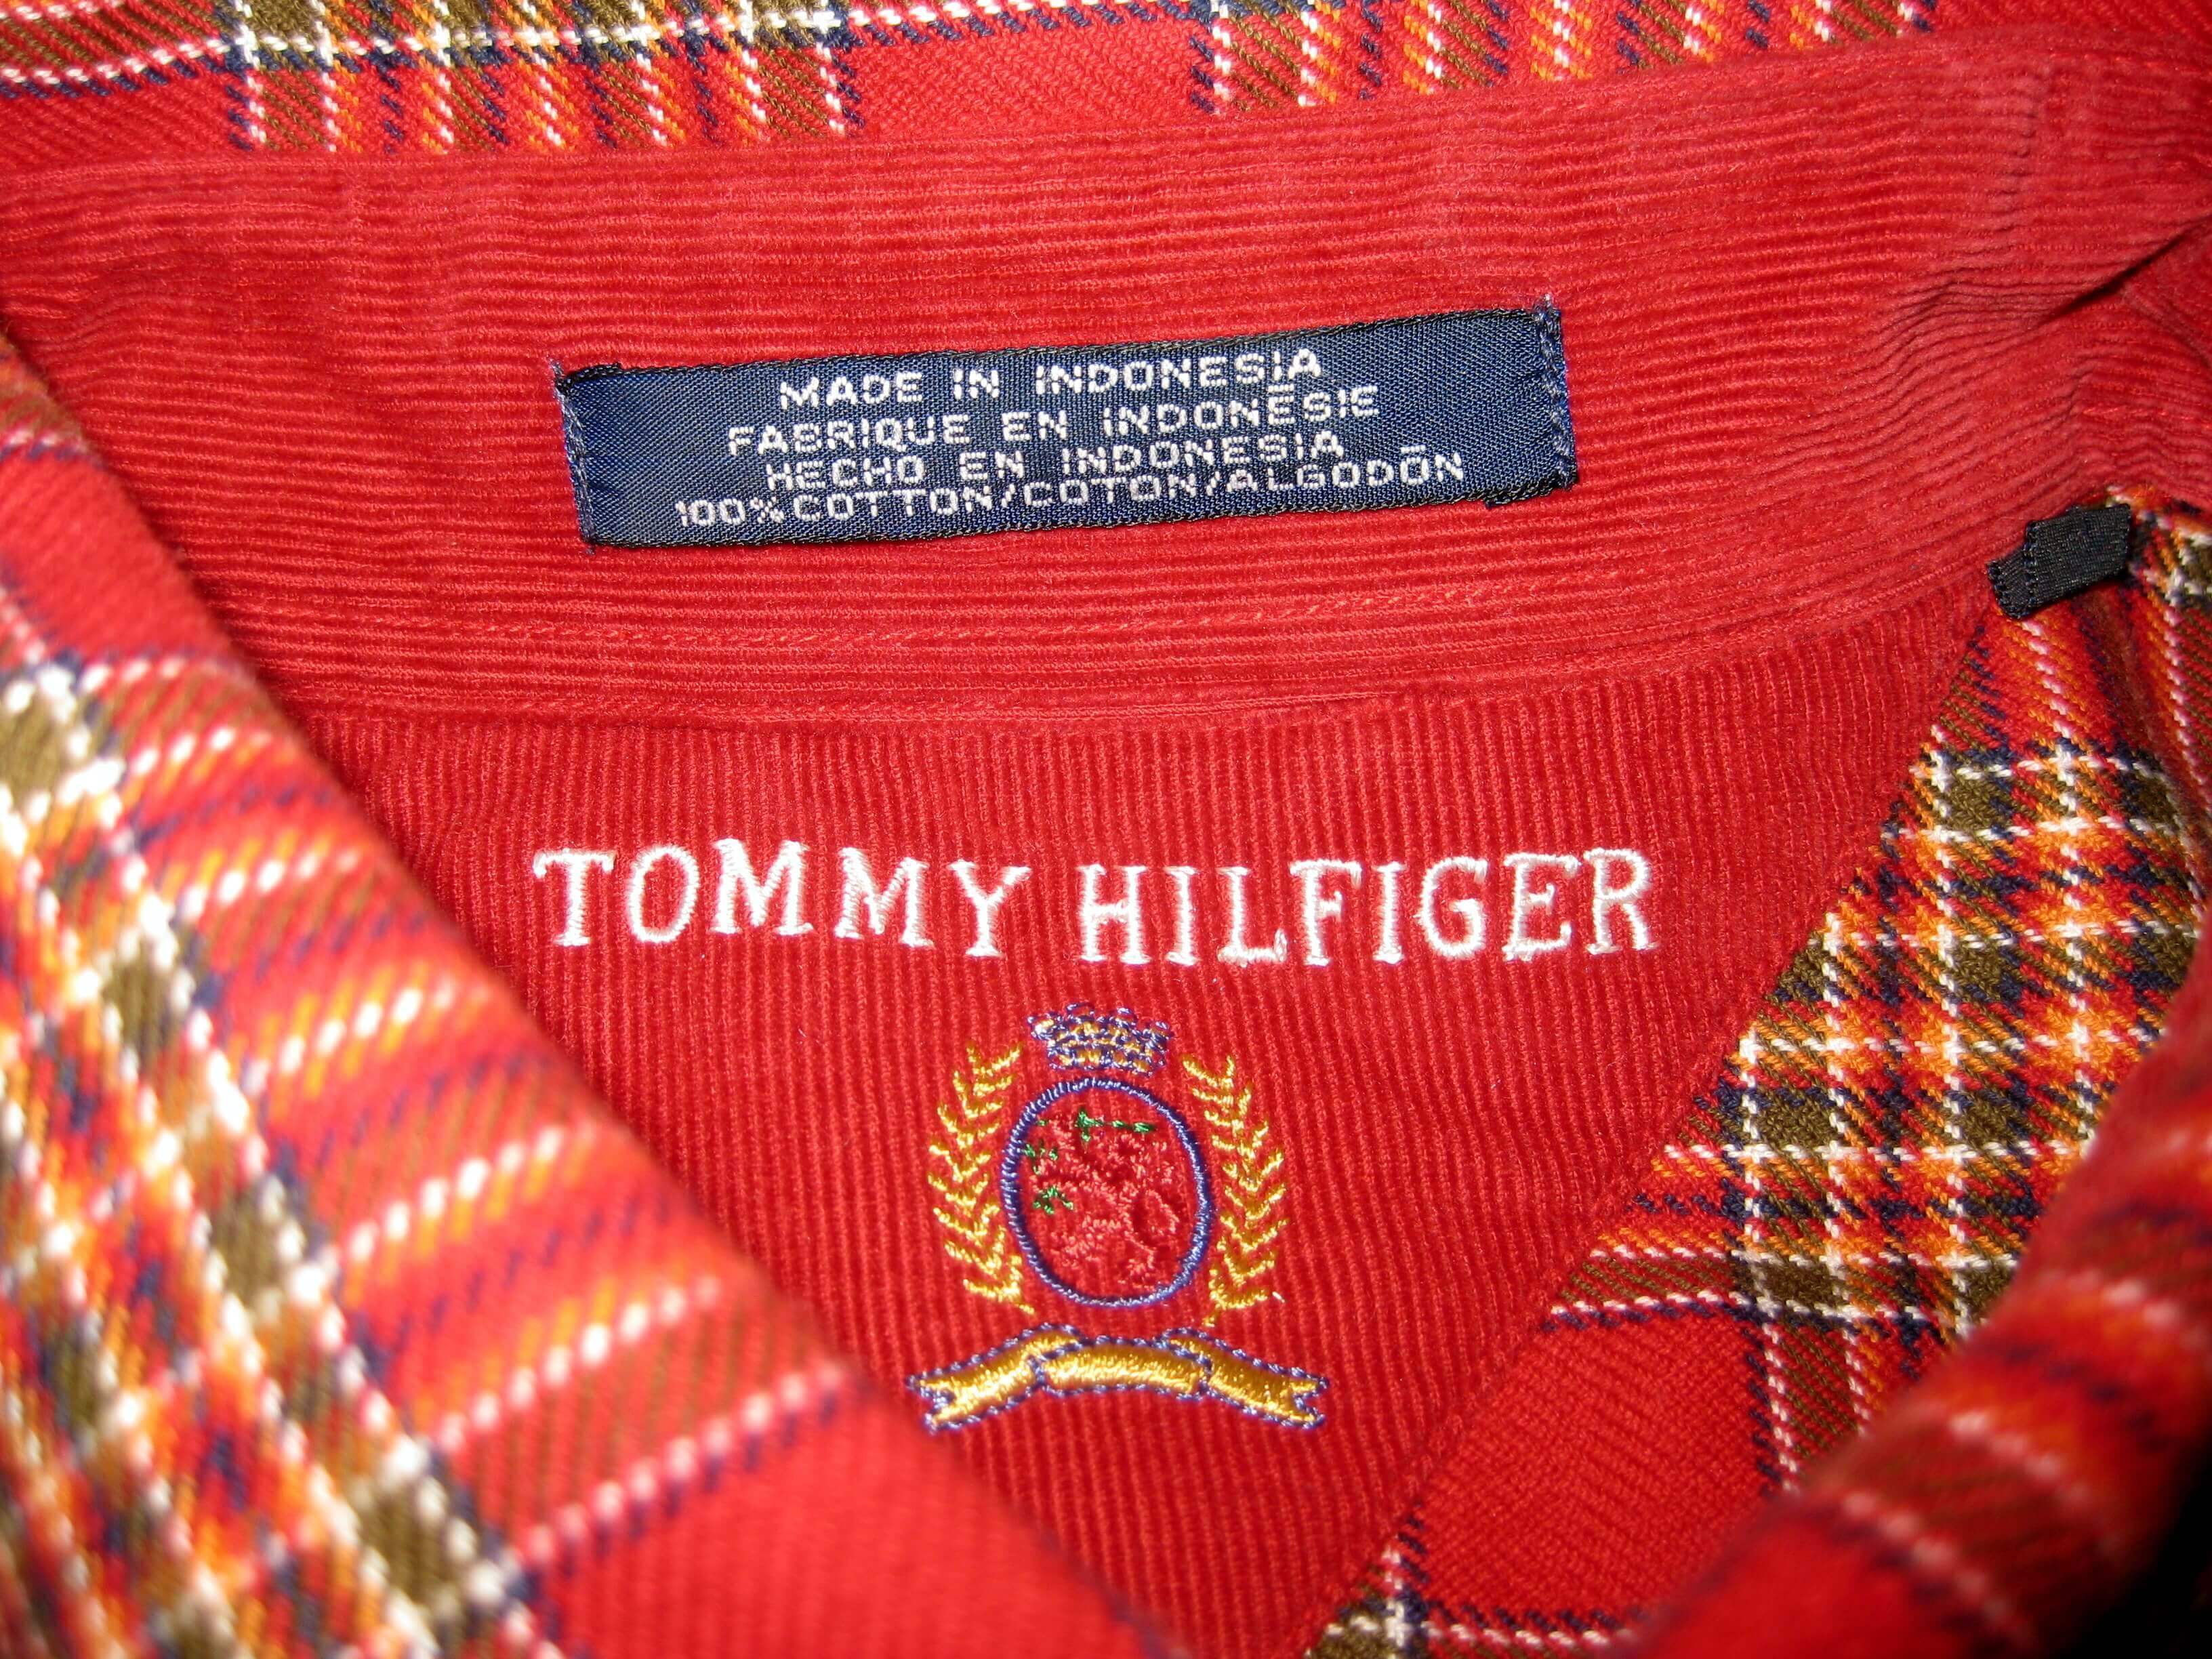 17a42edf593911 Tommy Hilfiger - eBay Clothing Series  3 - Flipping A Dollar